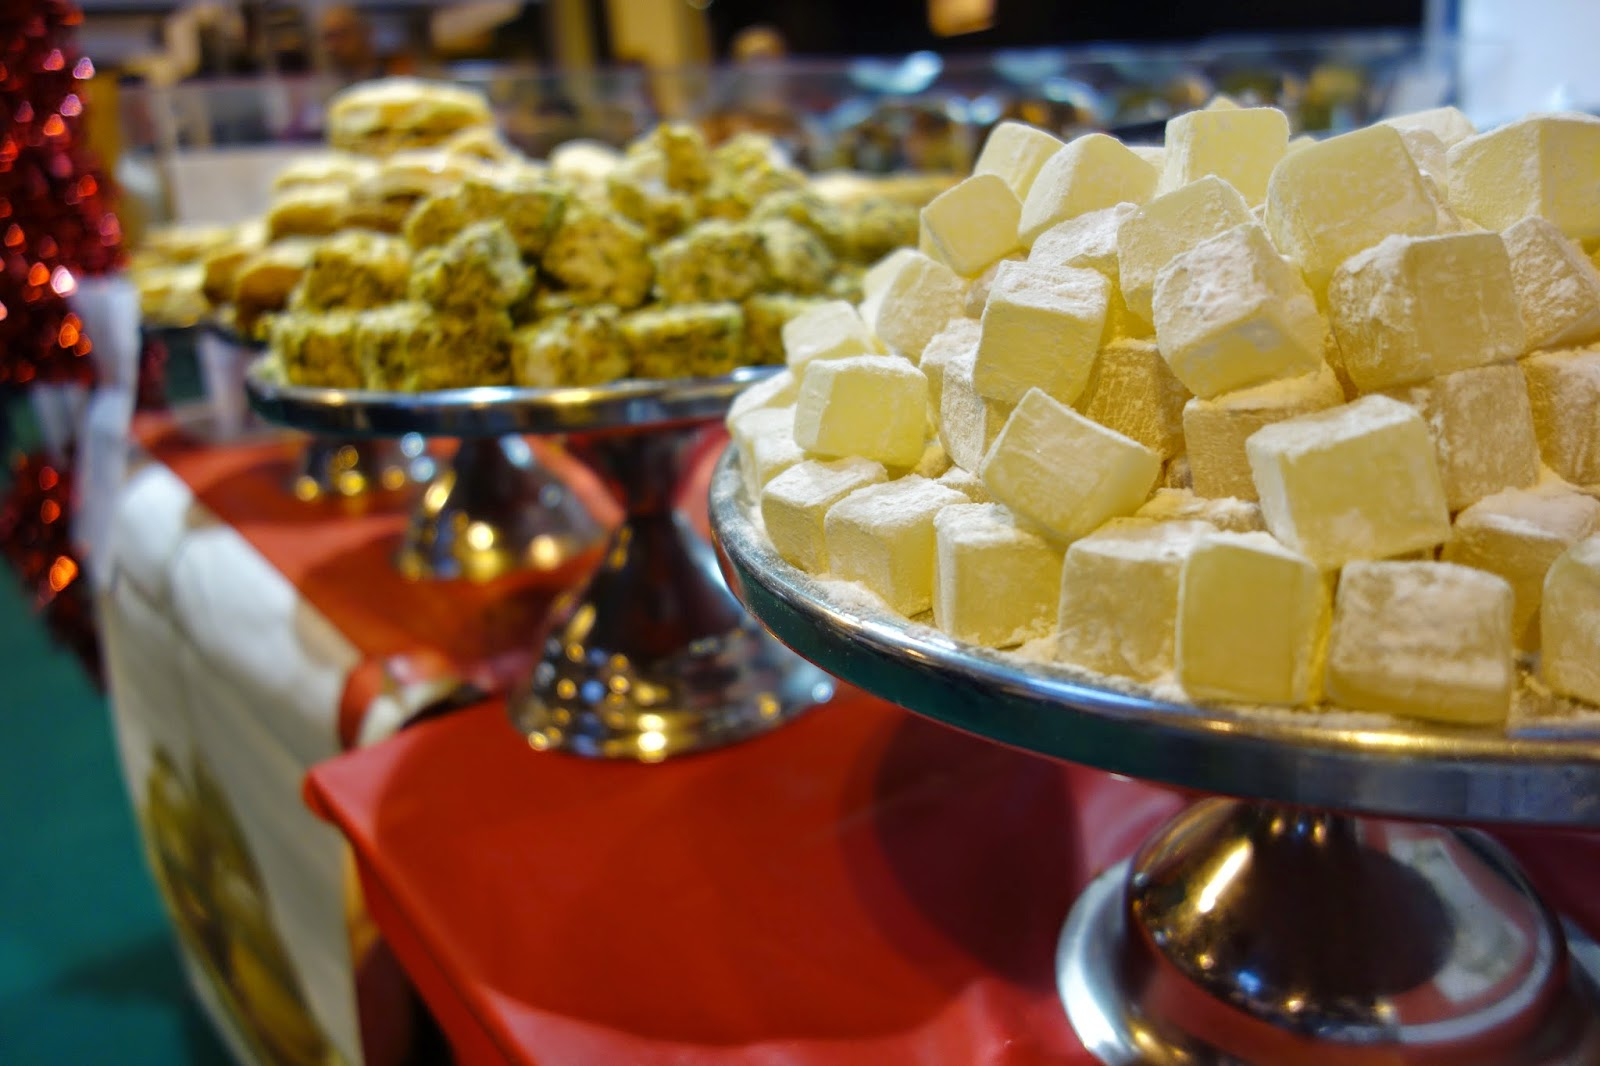 Rows of turkish delight displayed at the Good Food Show Winter